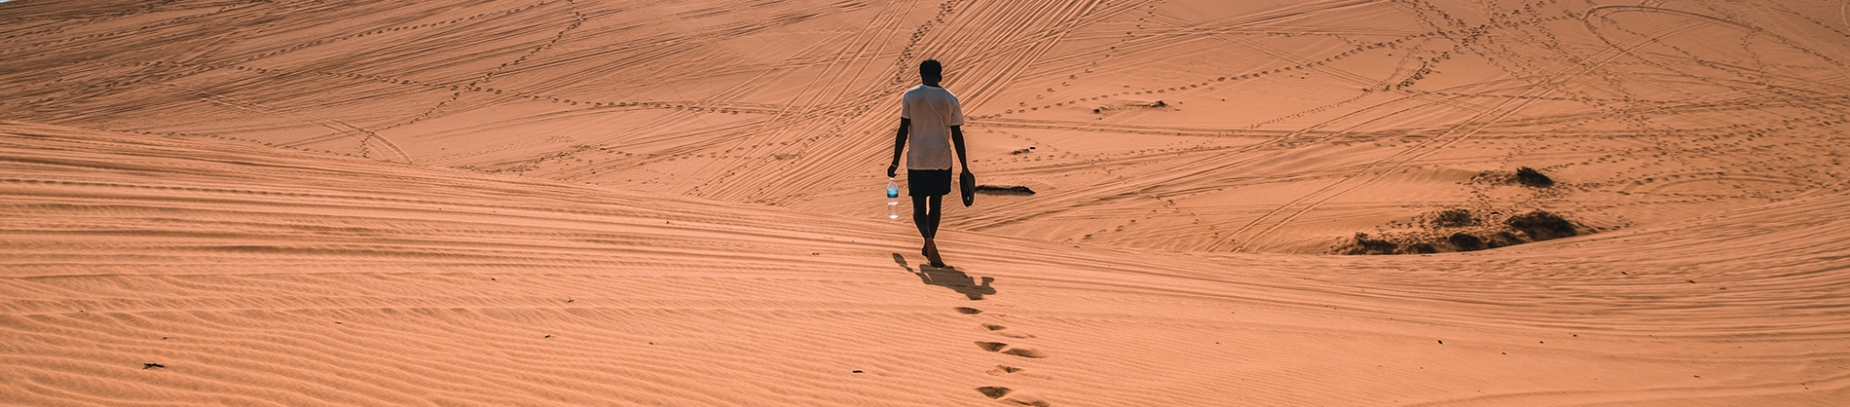 A man walking through the desert holding shoes and water